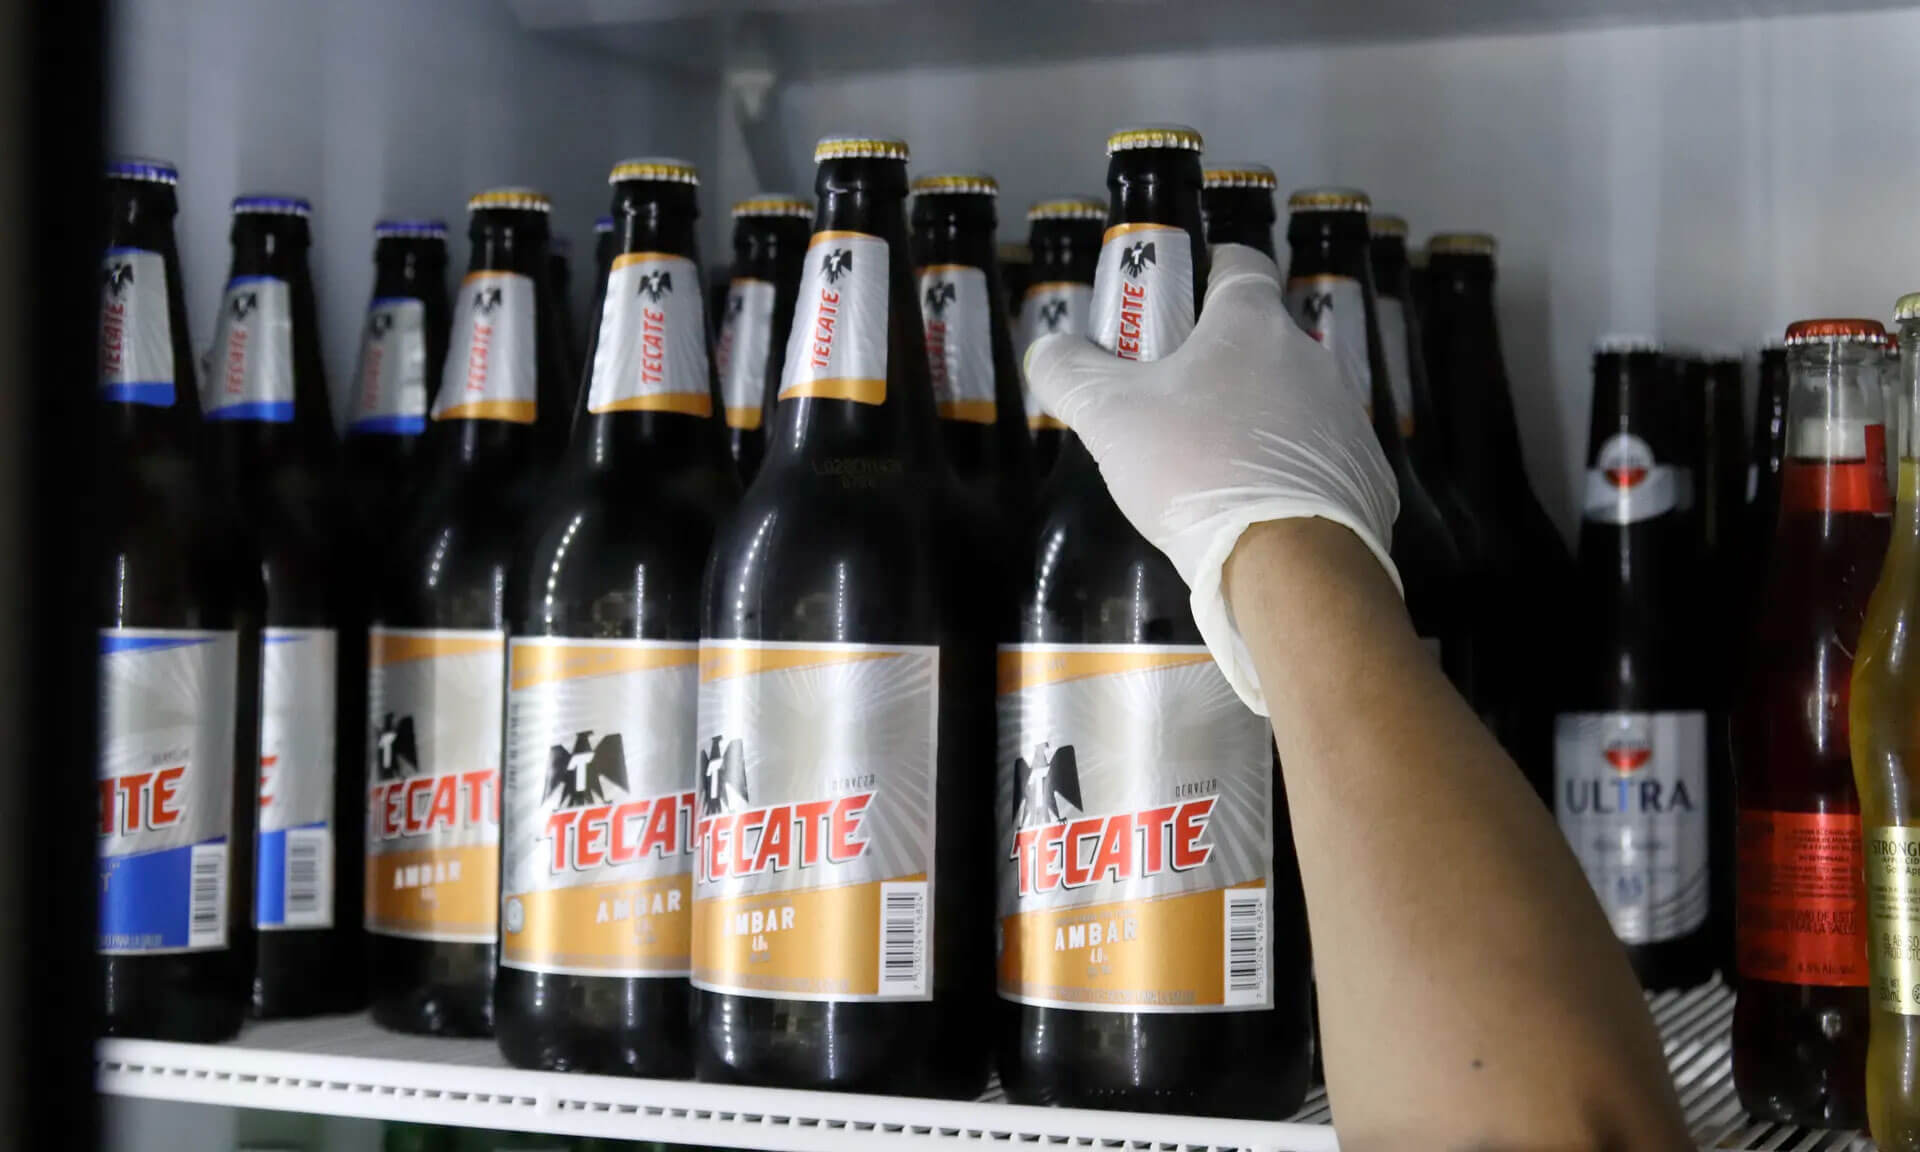 Beer for sale early last month in Mexico City. Supplies have dwindled as the country in a national beer drought. Photograph: Jose Pazos/EPA